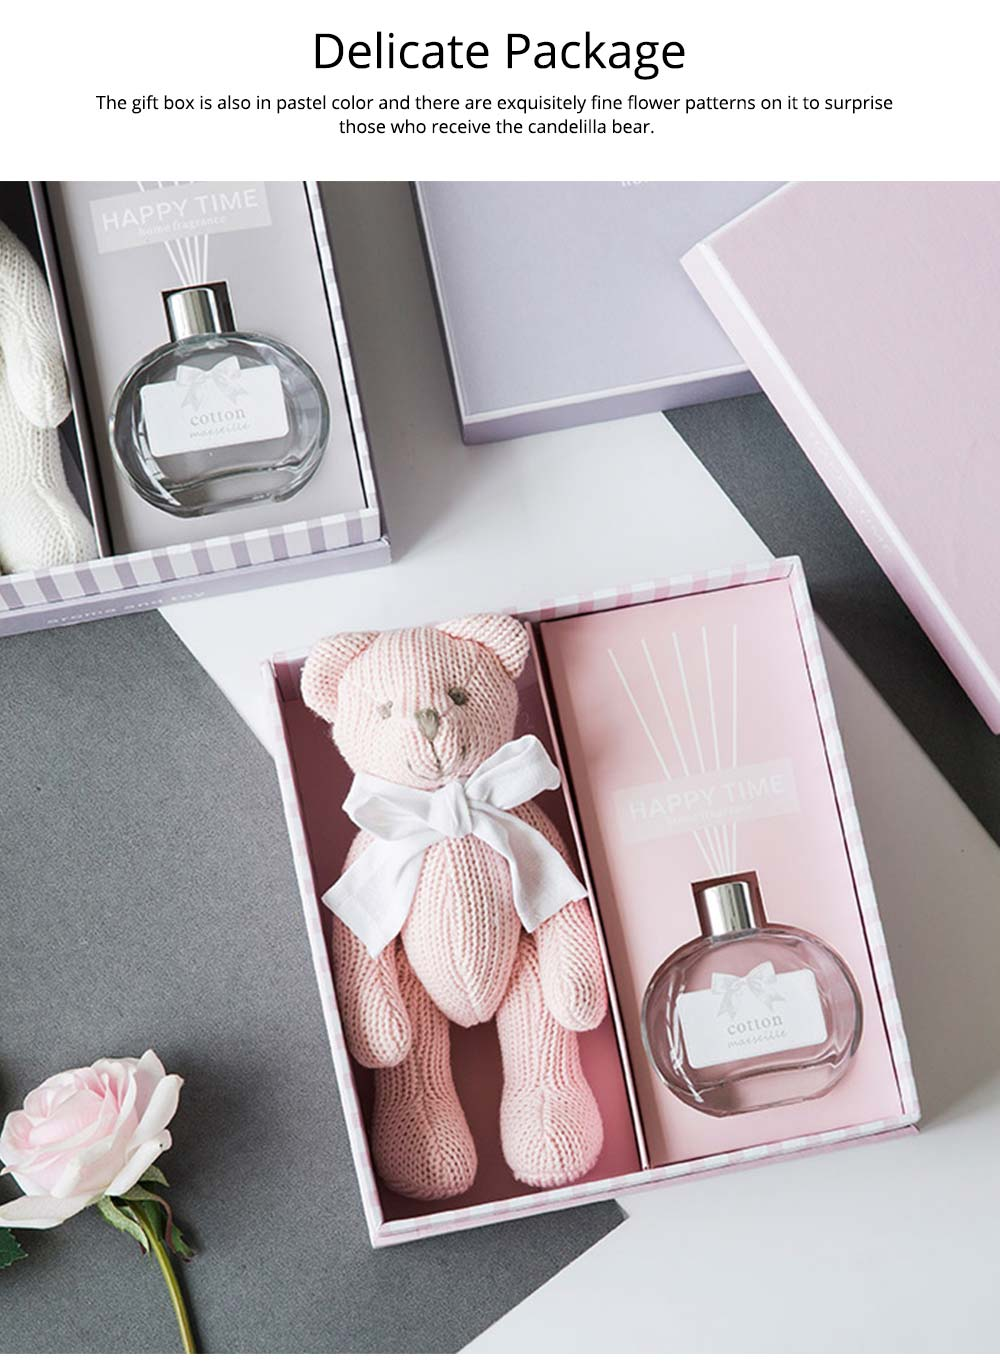 Creative Fragrance Gift Box for Weddings Confidant Valentine's Day Birthday, Fragrant Muppet Candelilla Bear Present 5